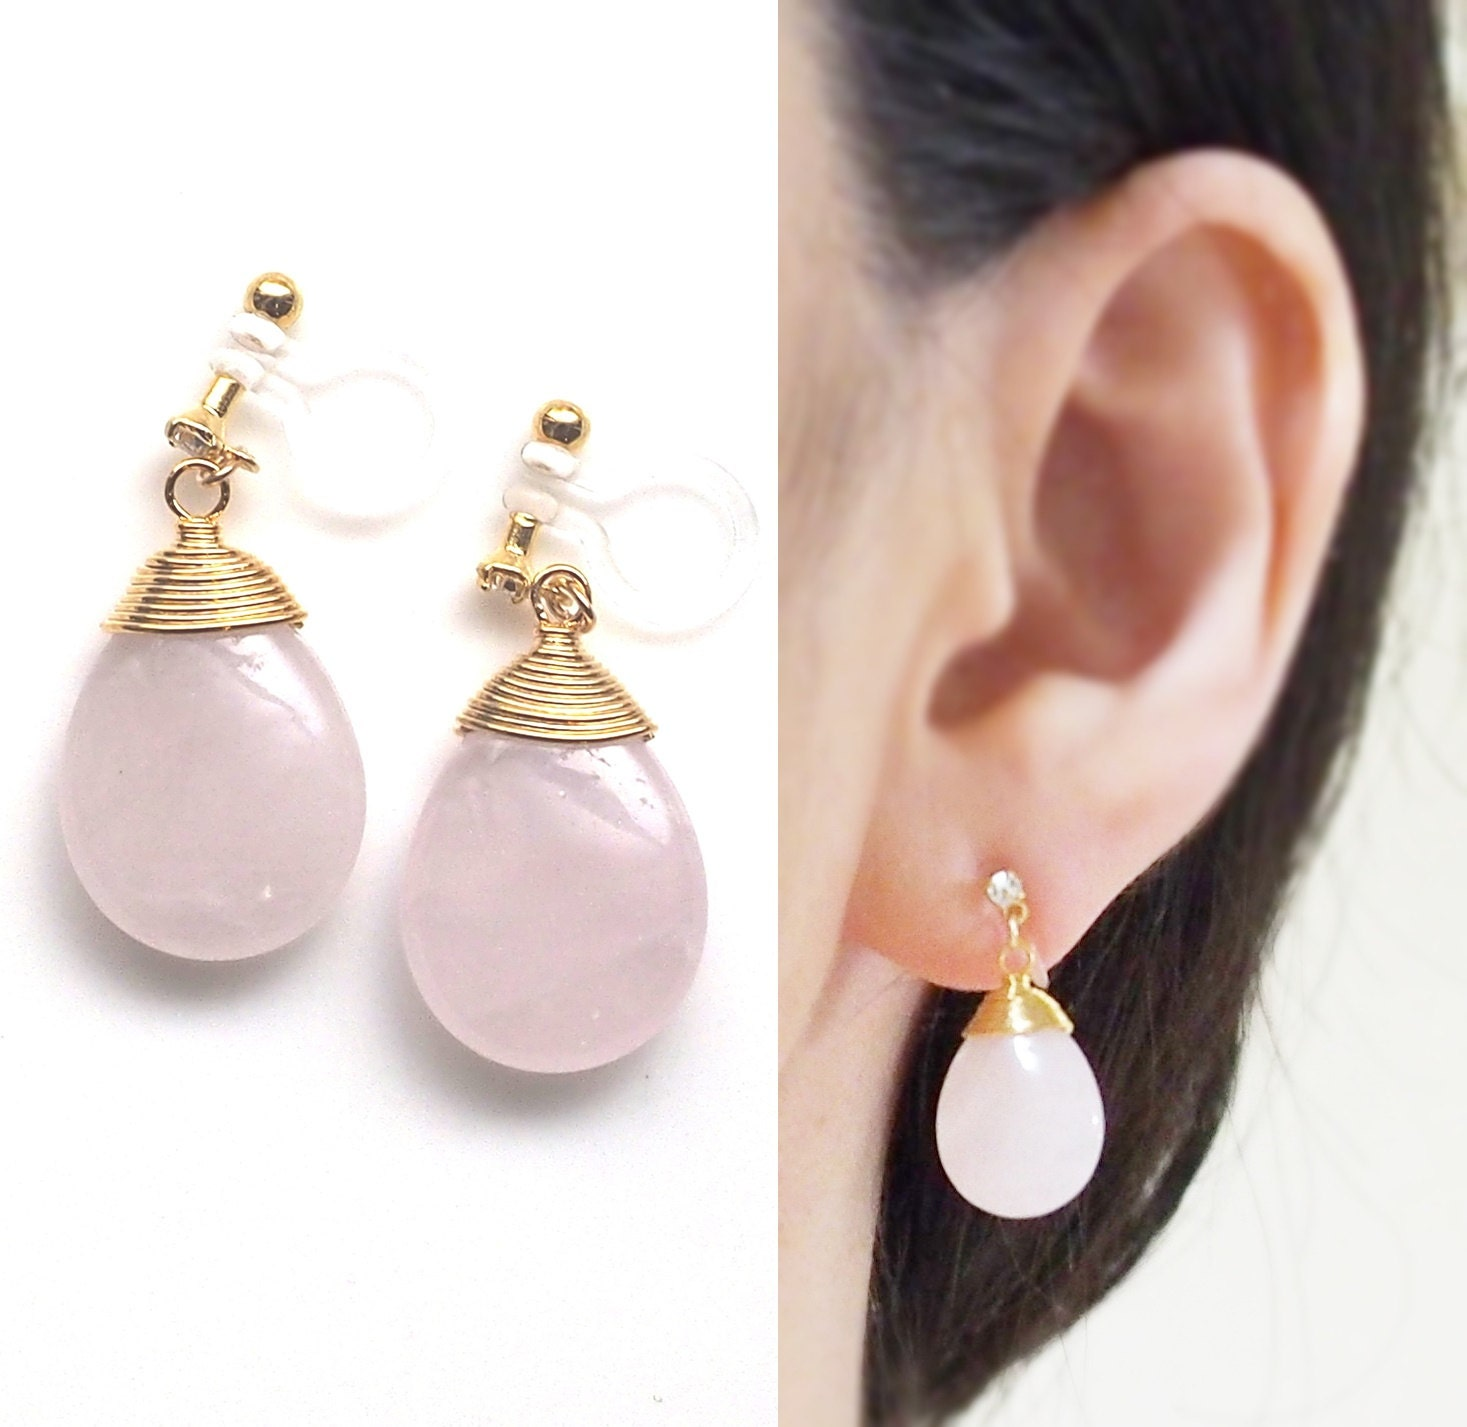 zoomed image a silver shell i les products r mermaid earrings pink am clip on ides and n